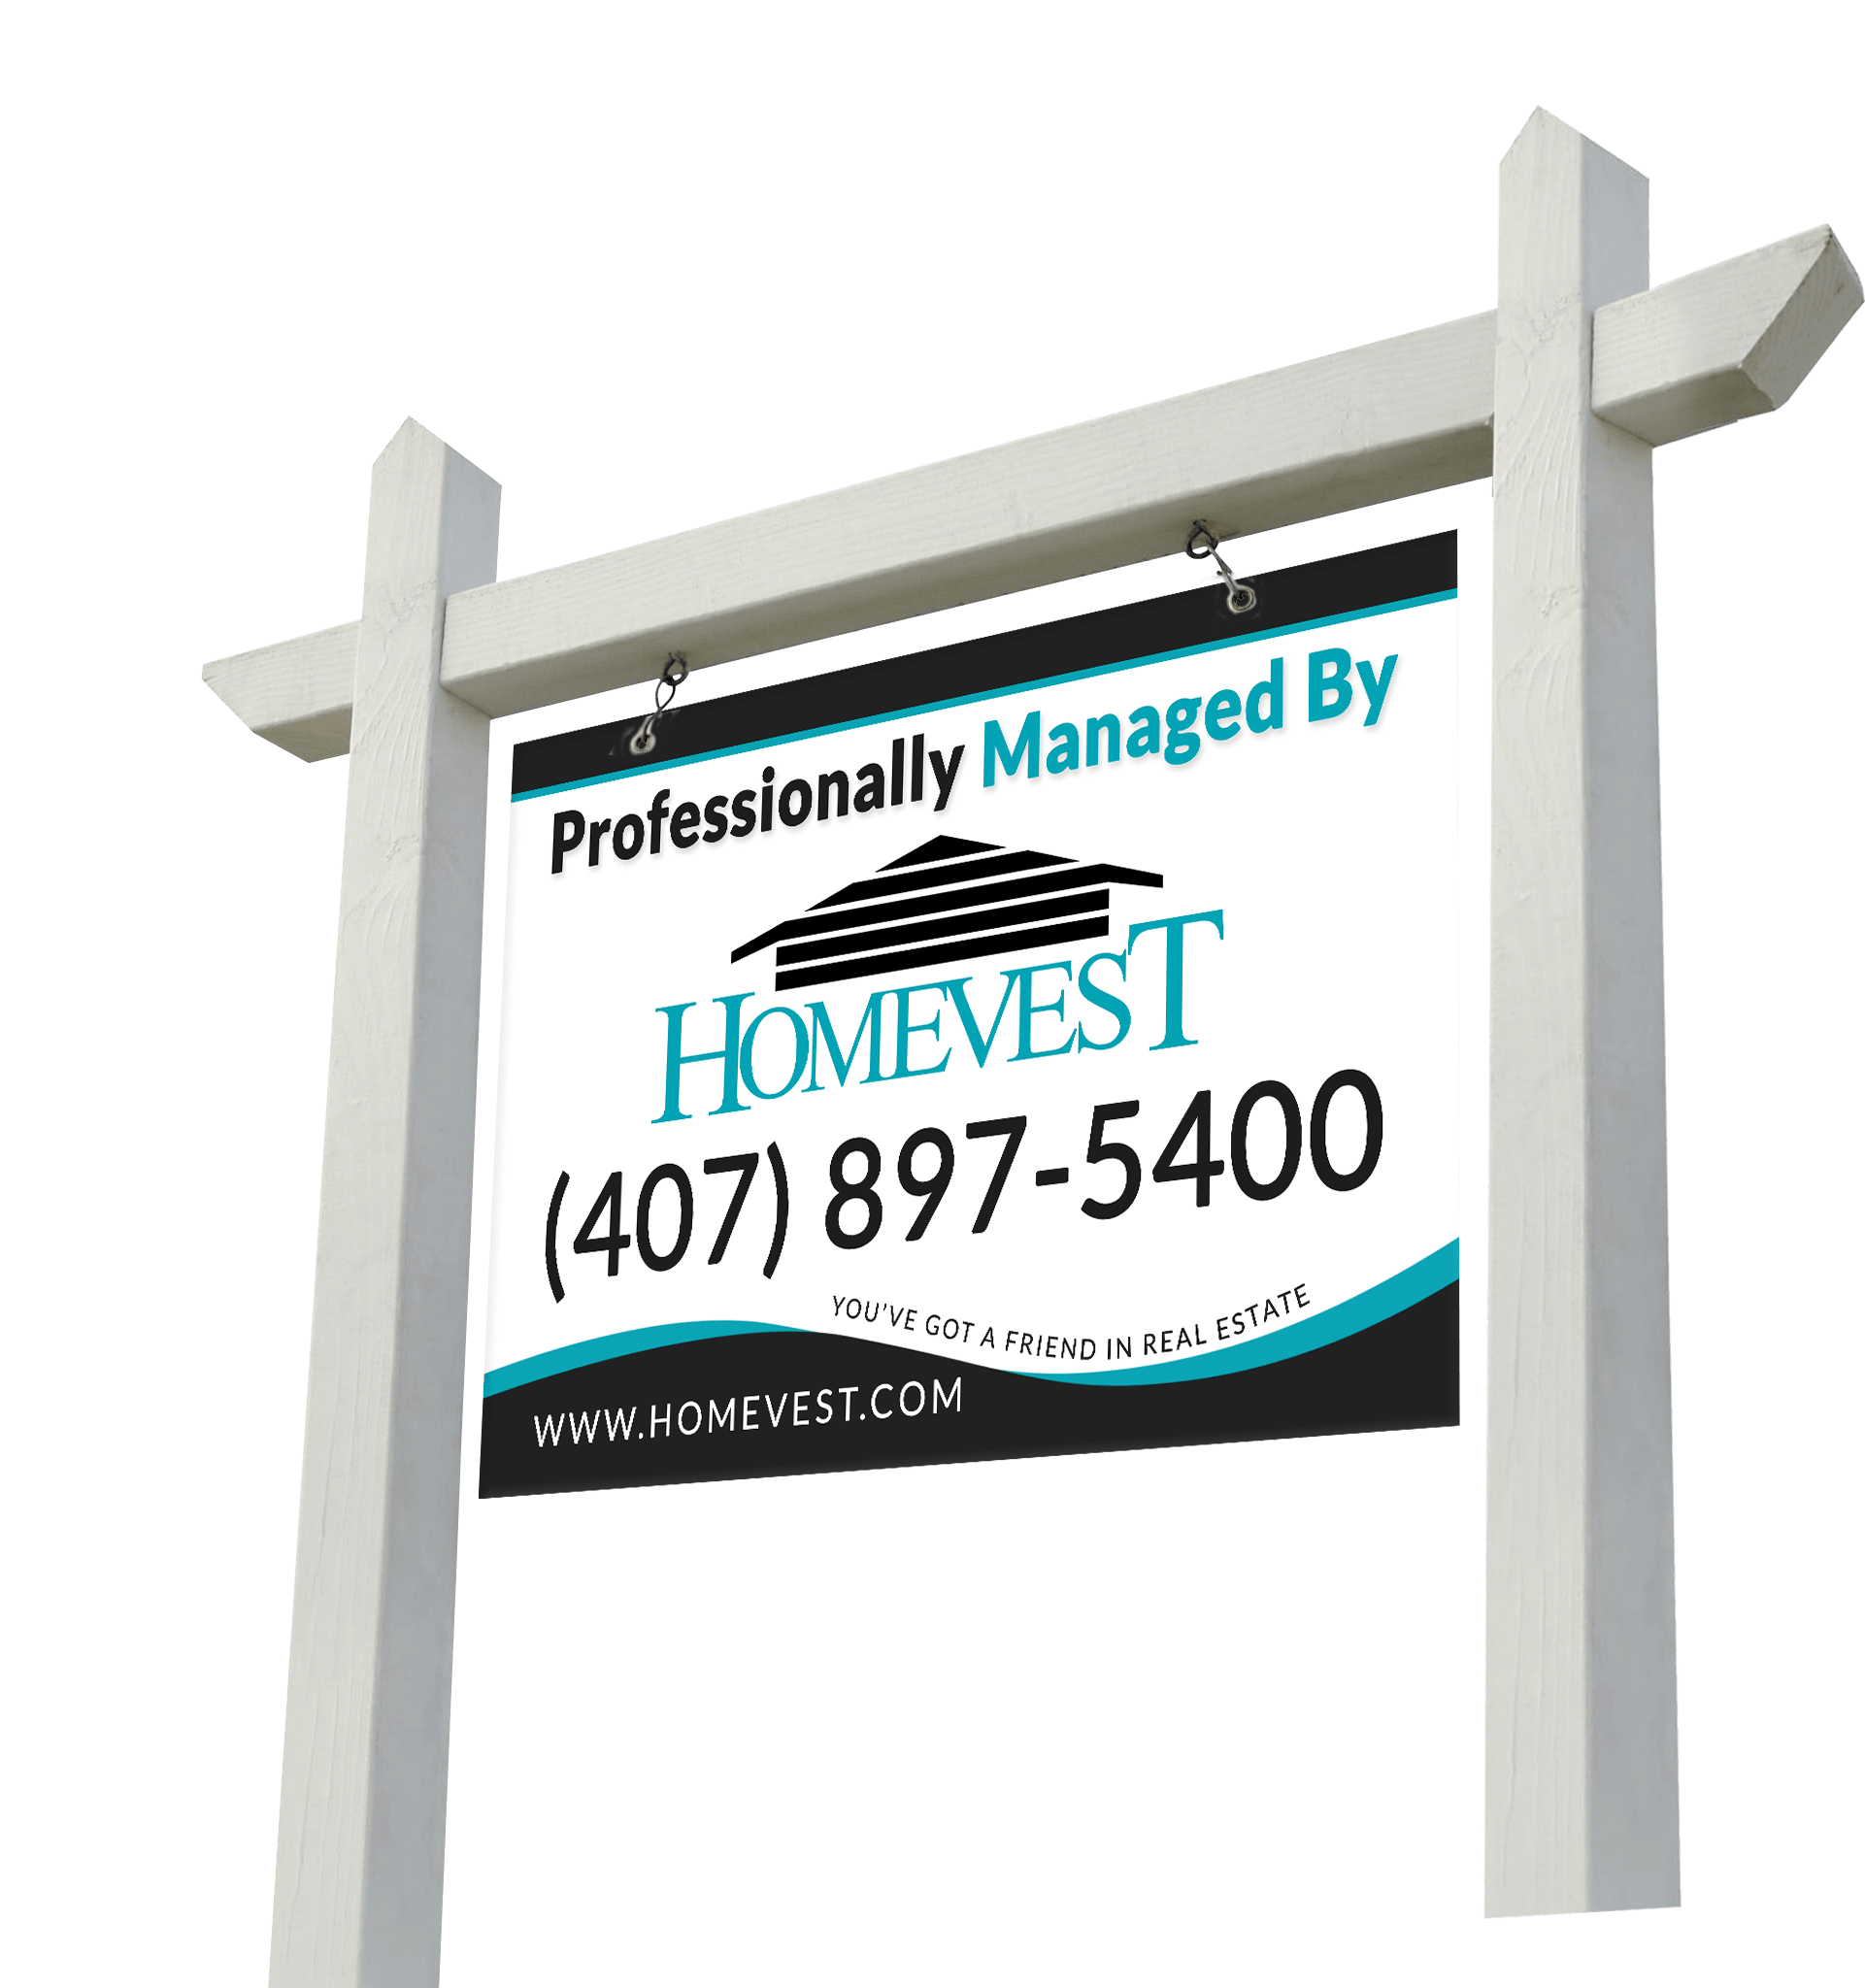 Professionally Management by Homevest Sign